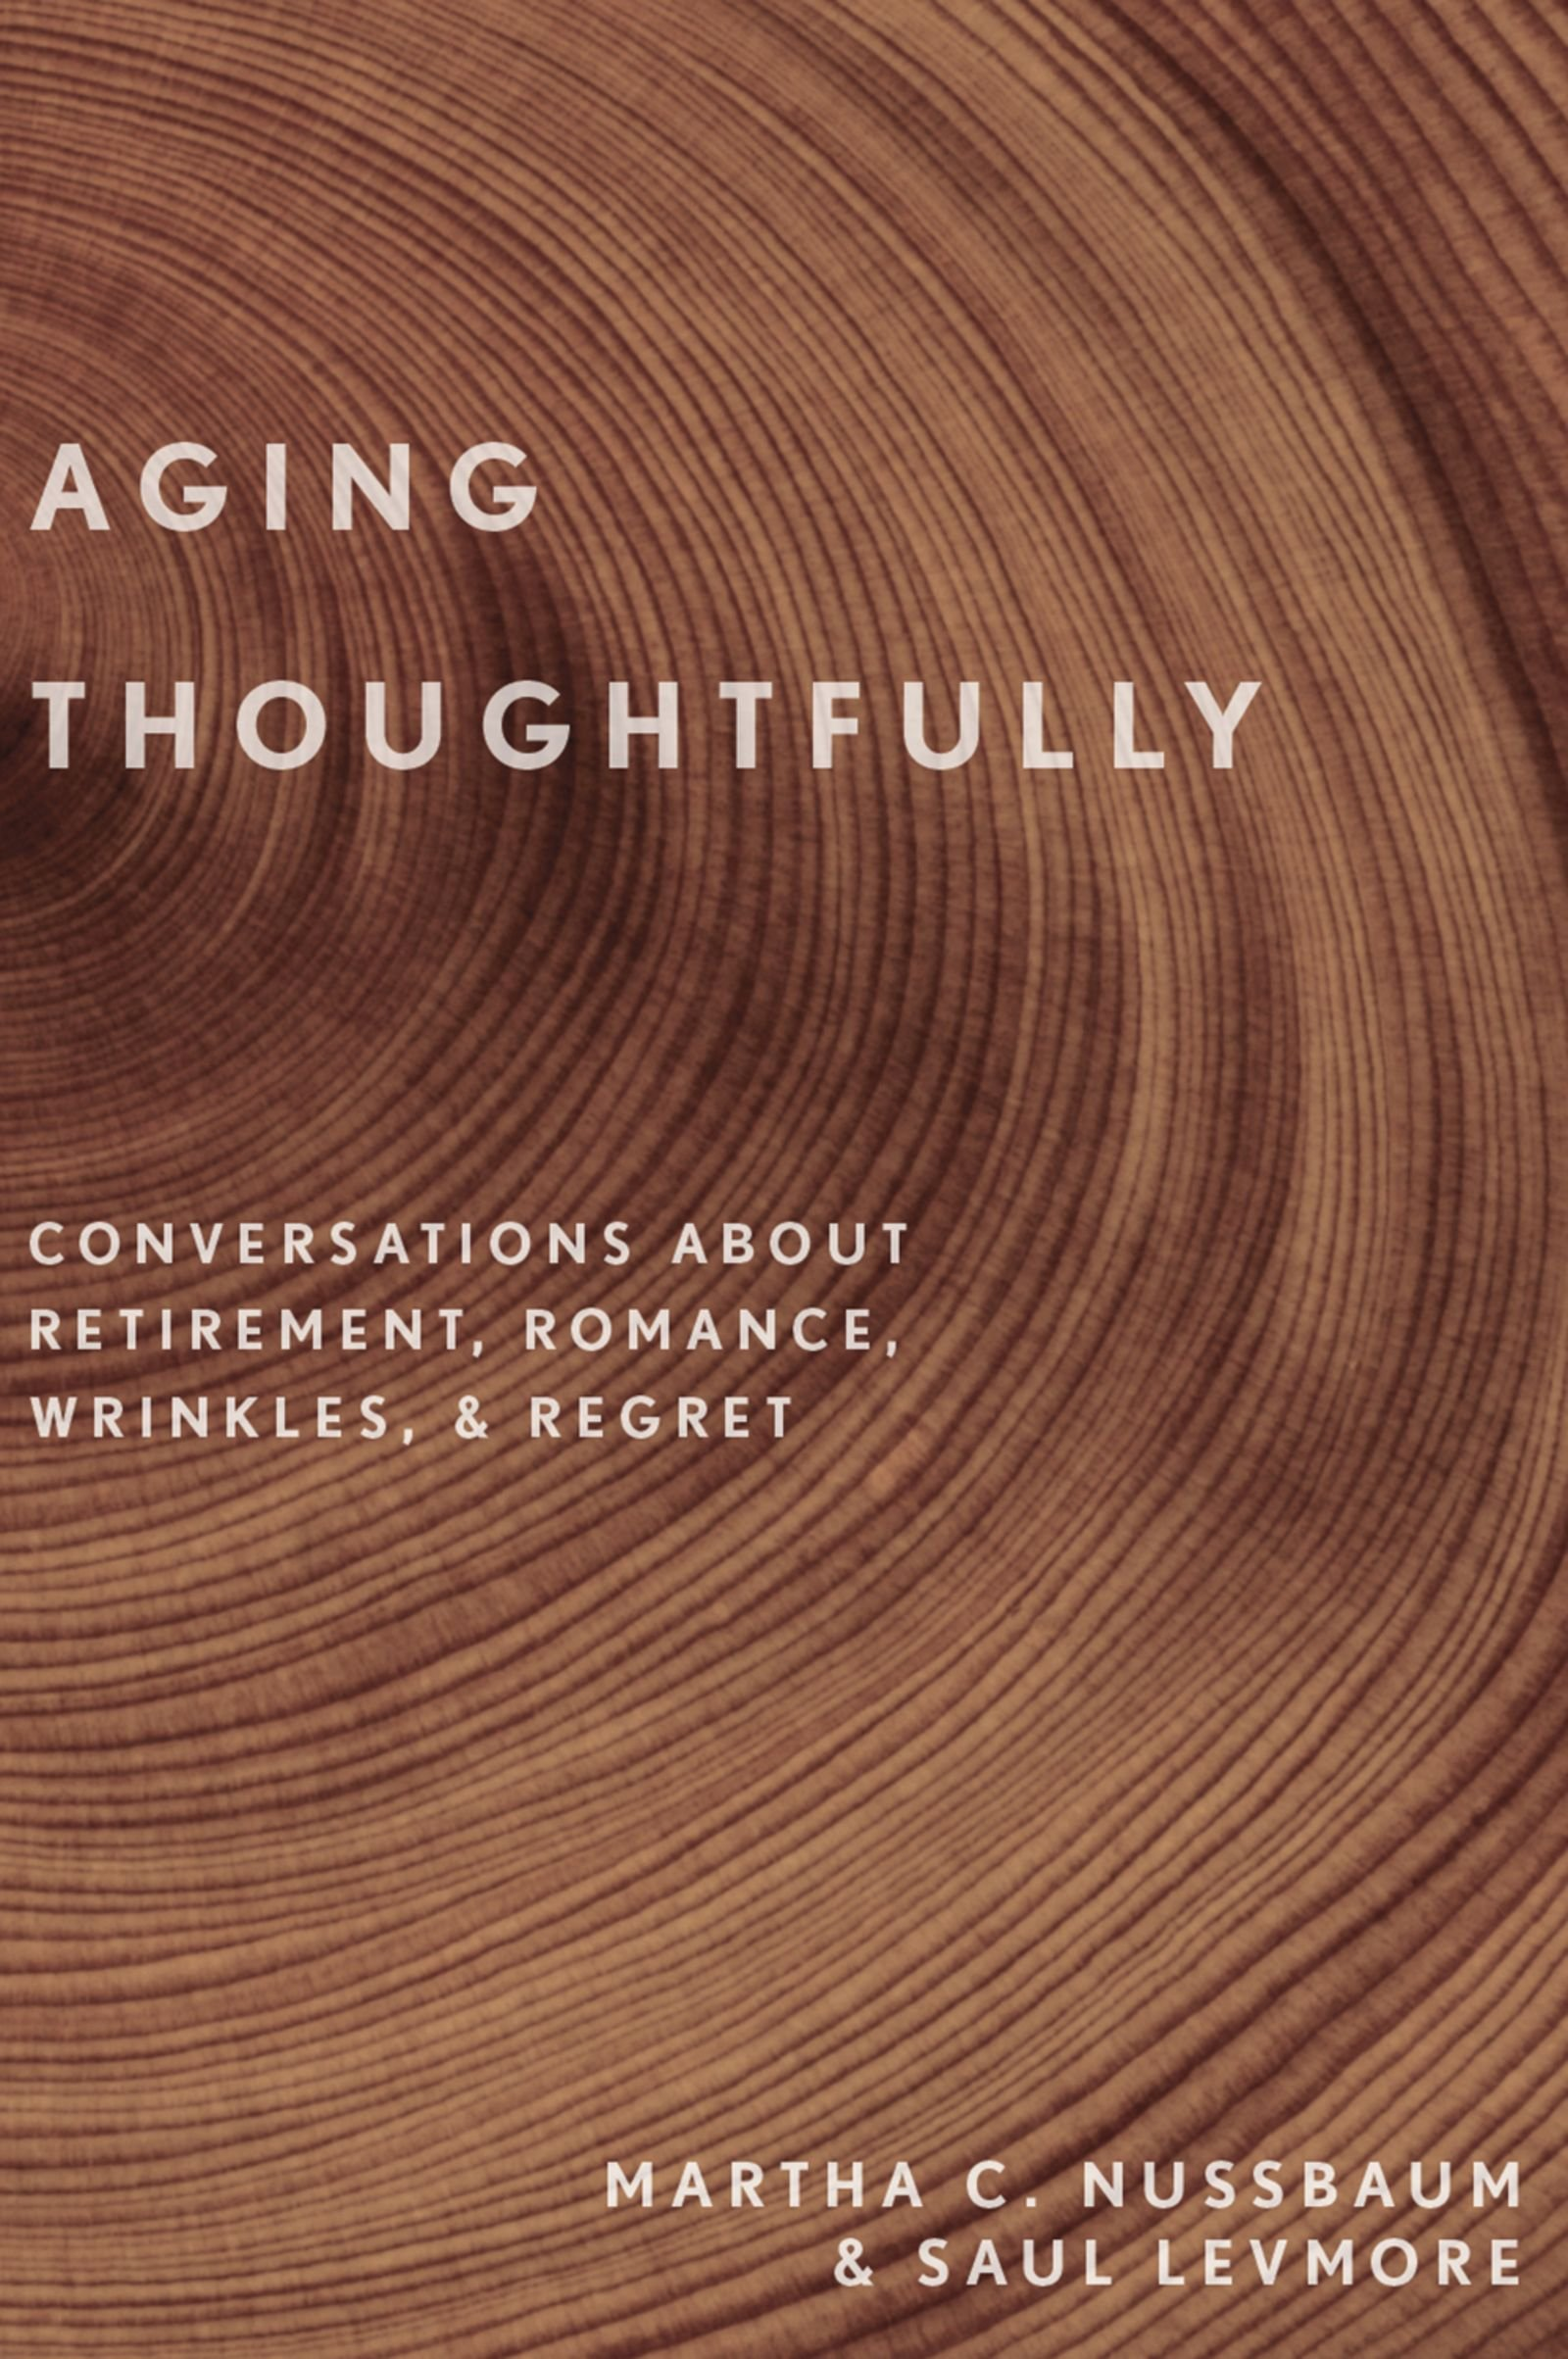 aging thoughtfully is our second pick for the best books on aging